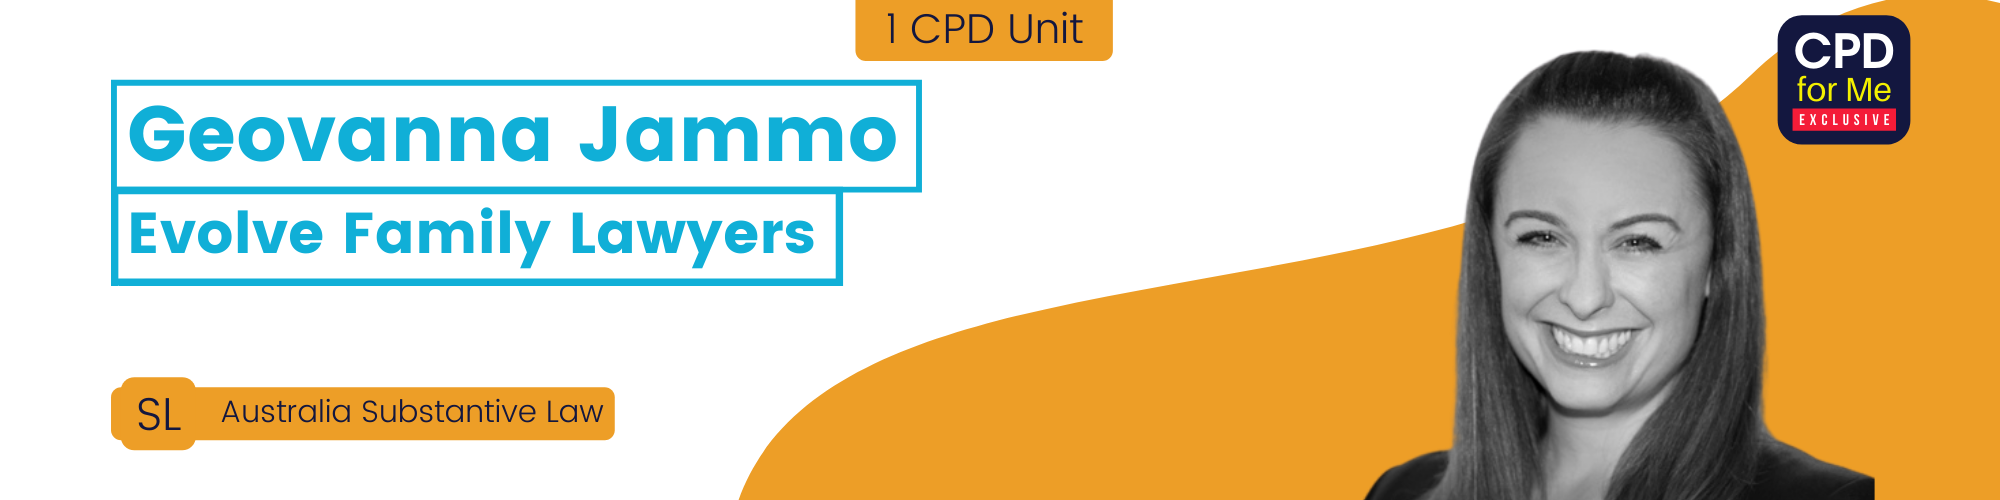 CPD-LIVE Event Page Banner - Geovanna Jammo